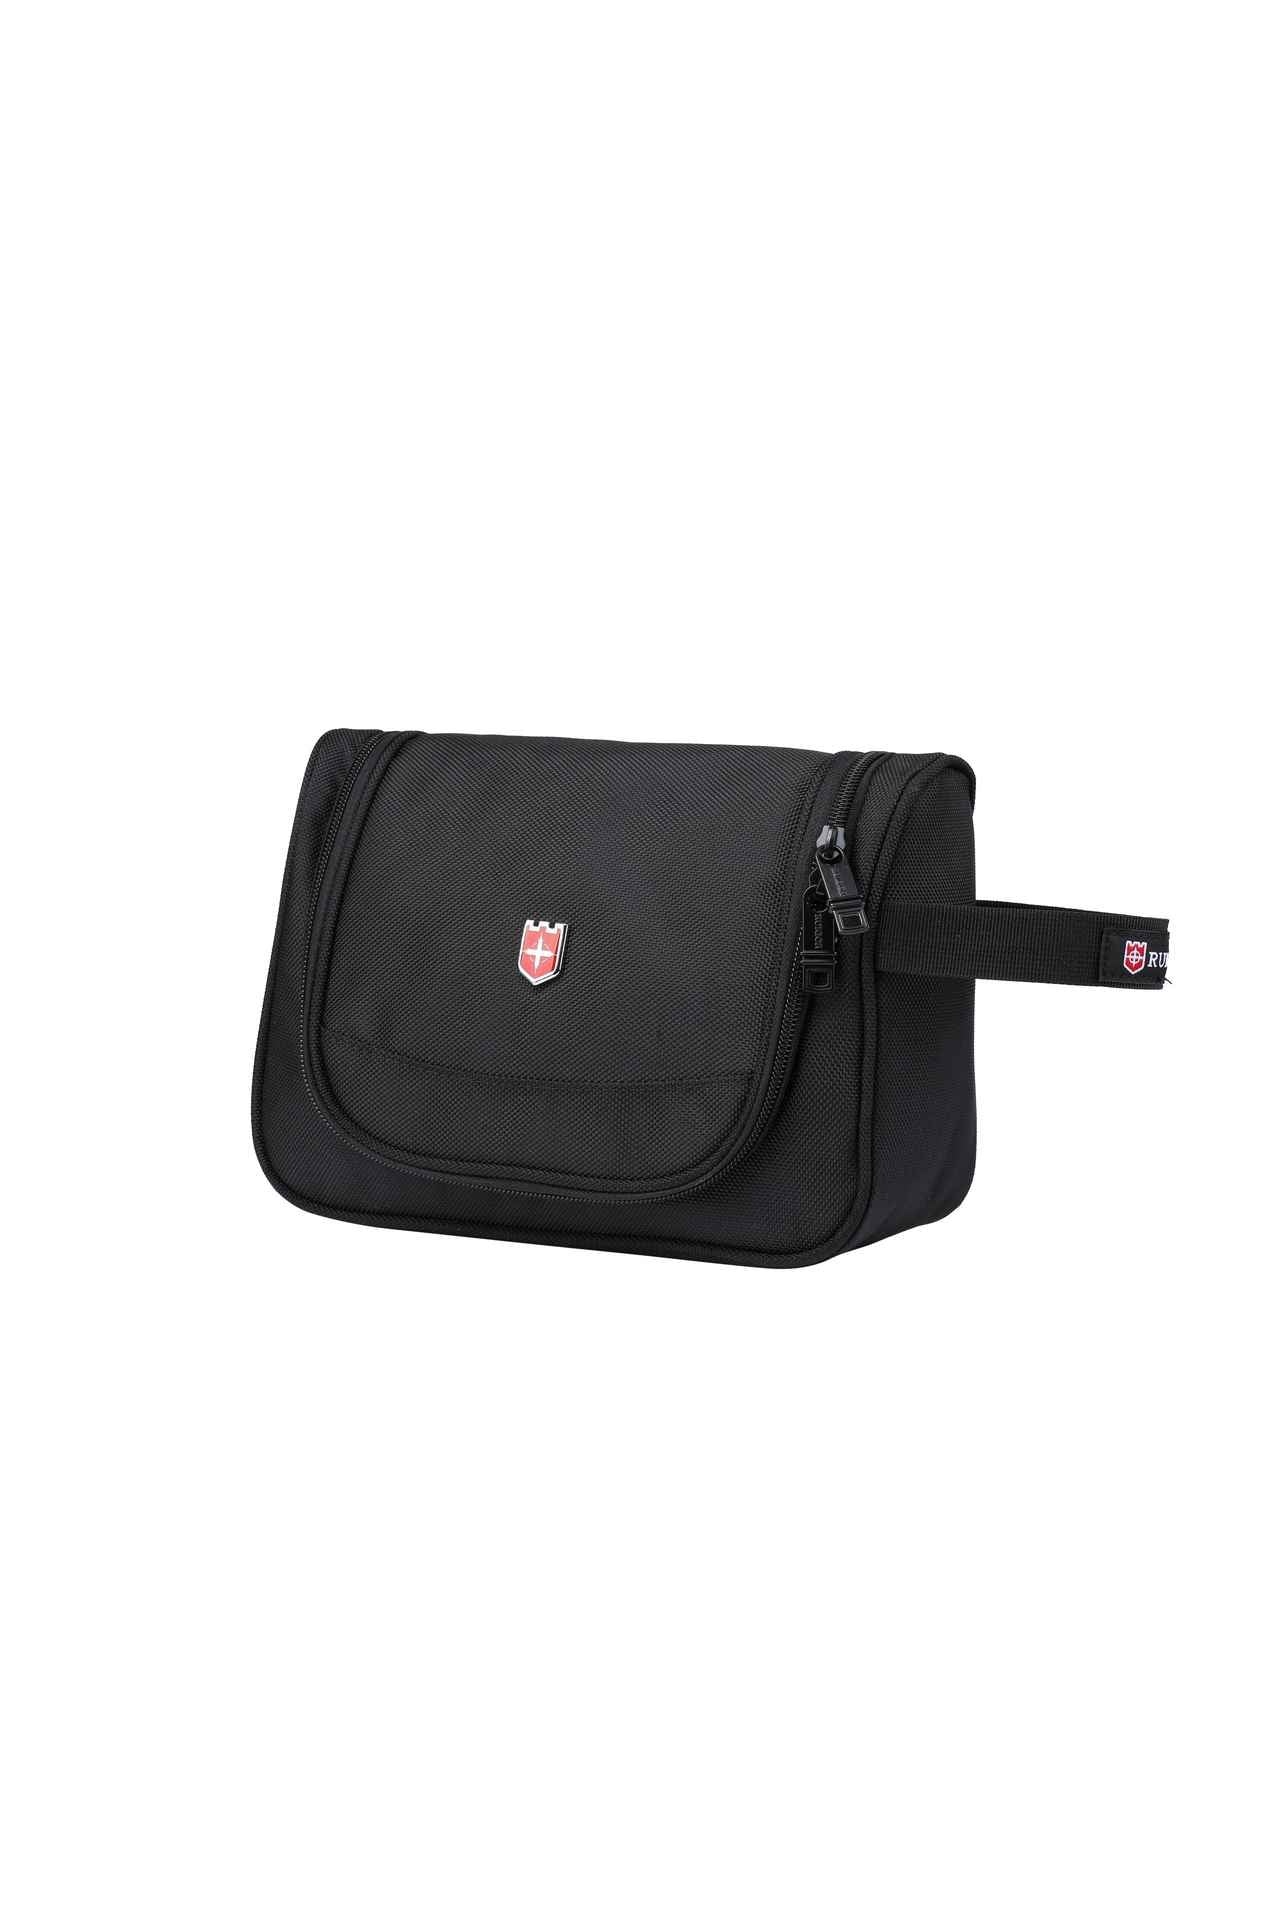 RUIGOR ICON 30 ACCESSORIES BAG BLACK - Unique Style